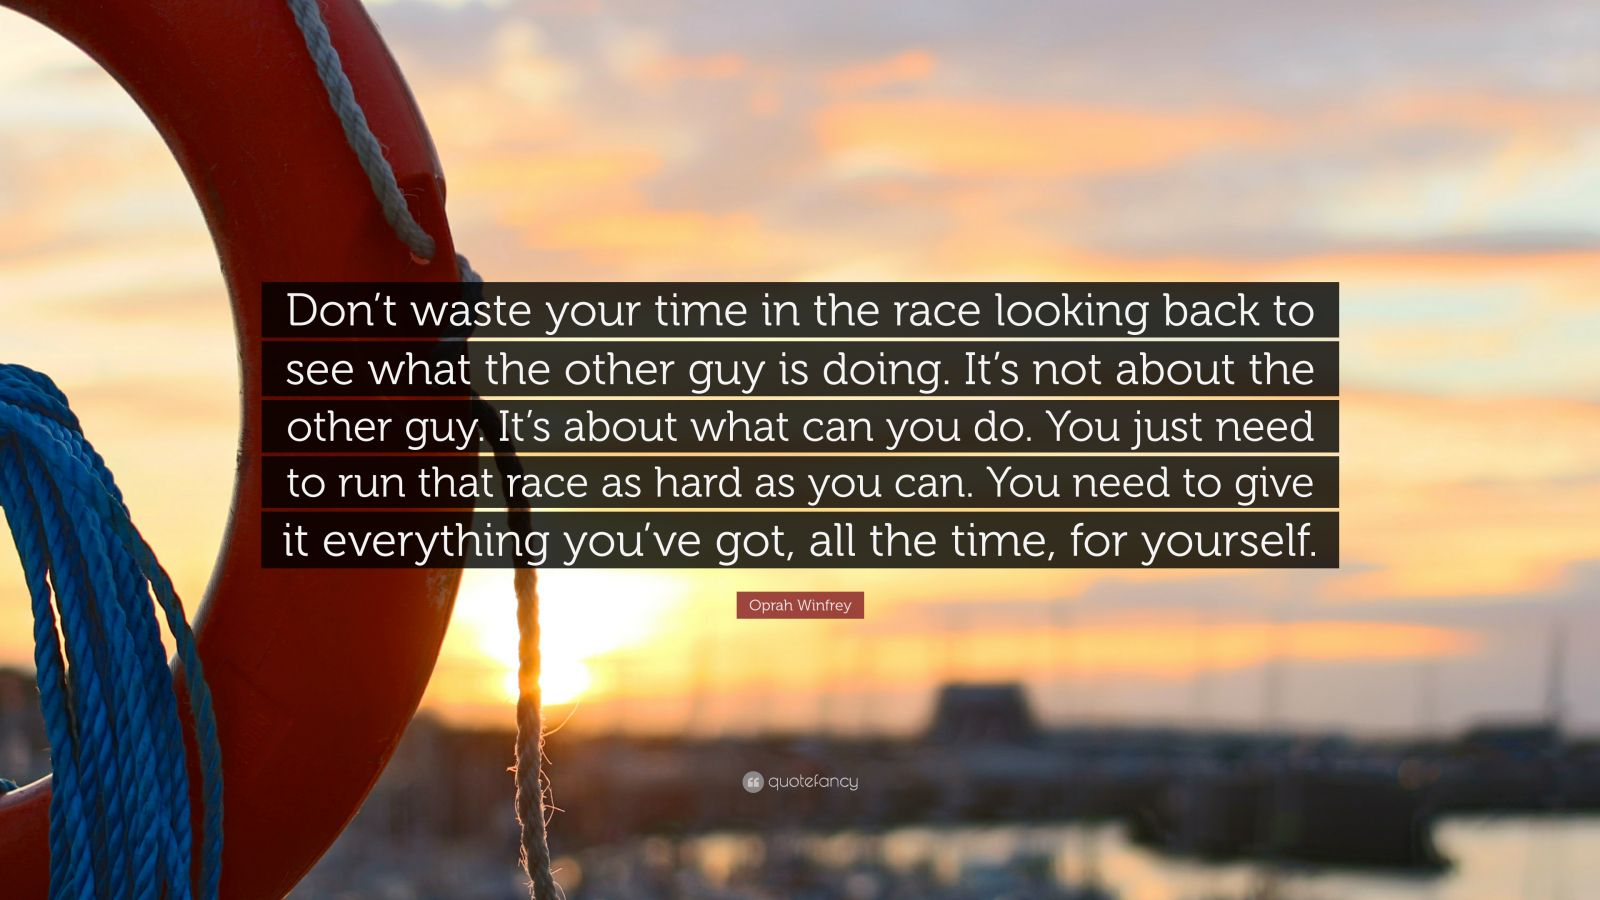 """Oprah Winfrey Quote: """"Don't waste your time in the race looking back to see what the other guy is doing. It's not about the other guy. It's about what can you do. You just need to run that race as hard as you can. You need to give it everything you've got, all the time, for yourself."""""""